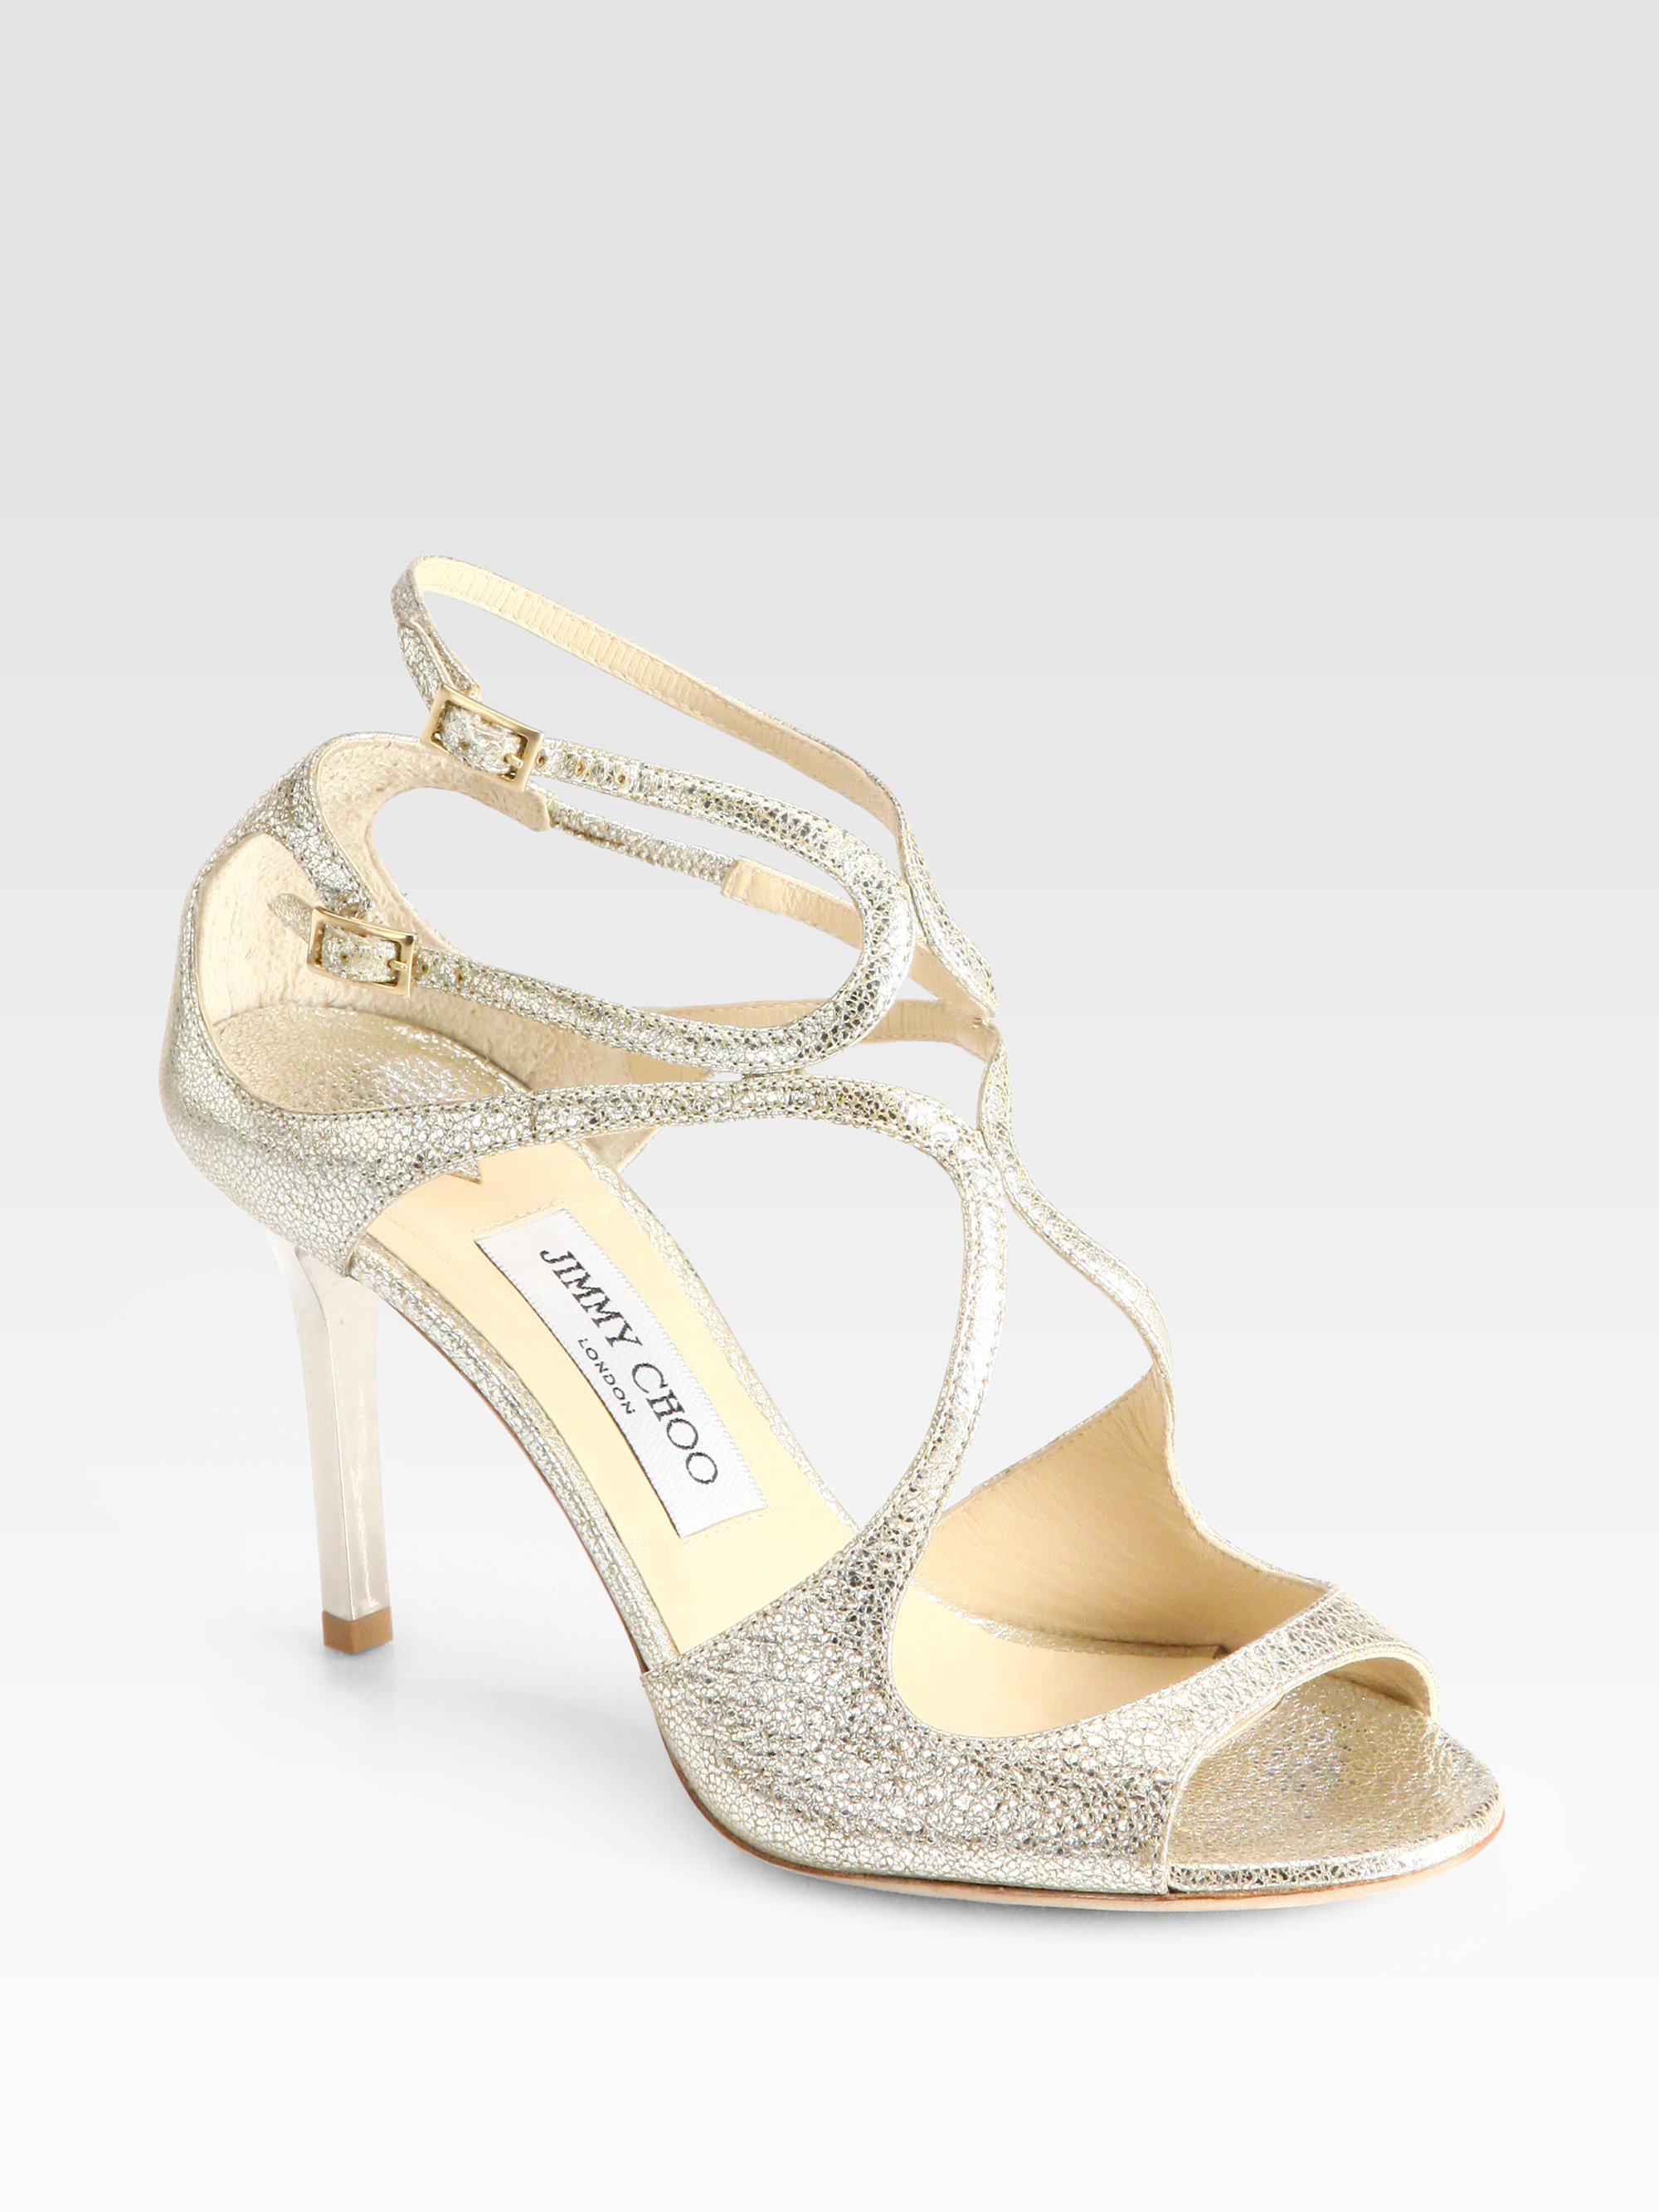 c79d6b81fd Jimmy Choo Ivette Crinkled Leather Sandals in Metallic - Lyst